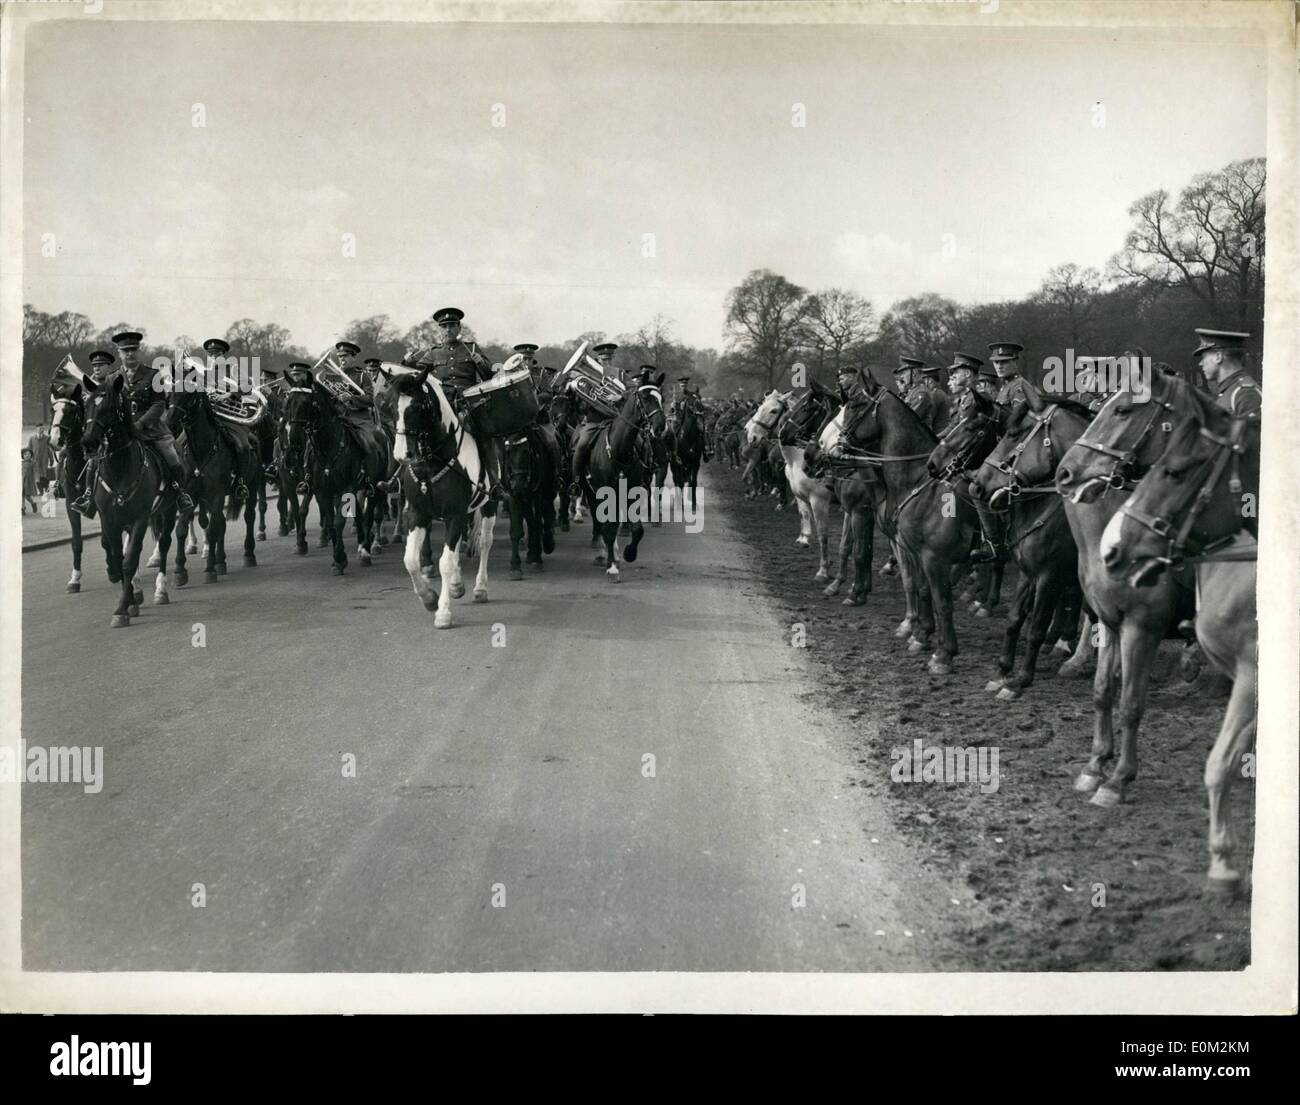 Apr. 04, 1953 - Band of the Household Cavalry Help in training Horses for V.I.Ps' - during the coronation.: The Band of the Household Cavalry ( The blues) playing as they pass horses which are being trainess at a special Camp in Hyde Park - by Army and R.A.F. Volunteers . The horses are being acoustomed to many V.I.P's who will take part in the Coronation procession. - Stock Image